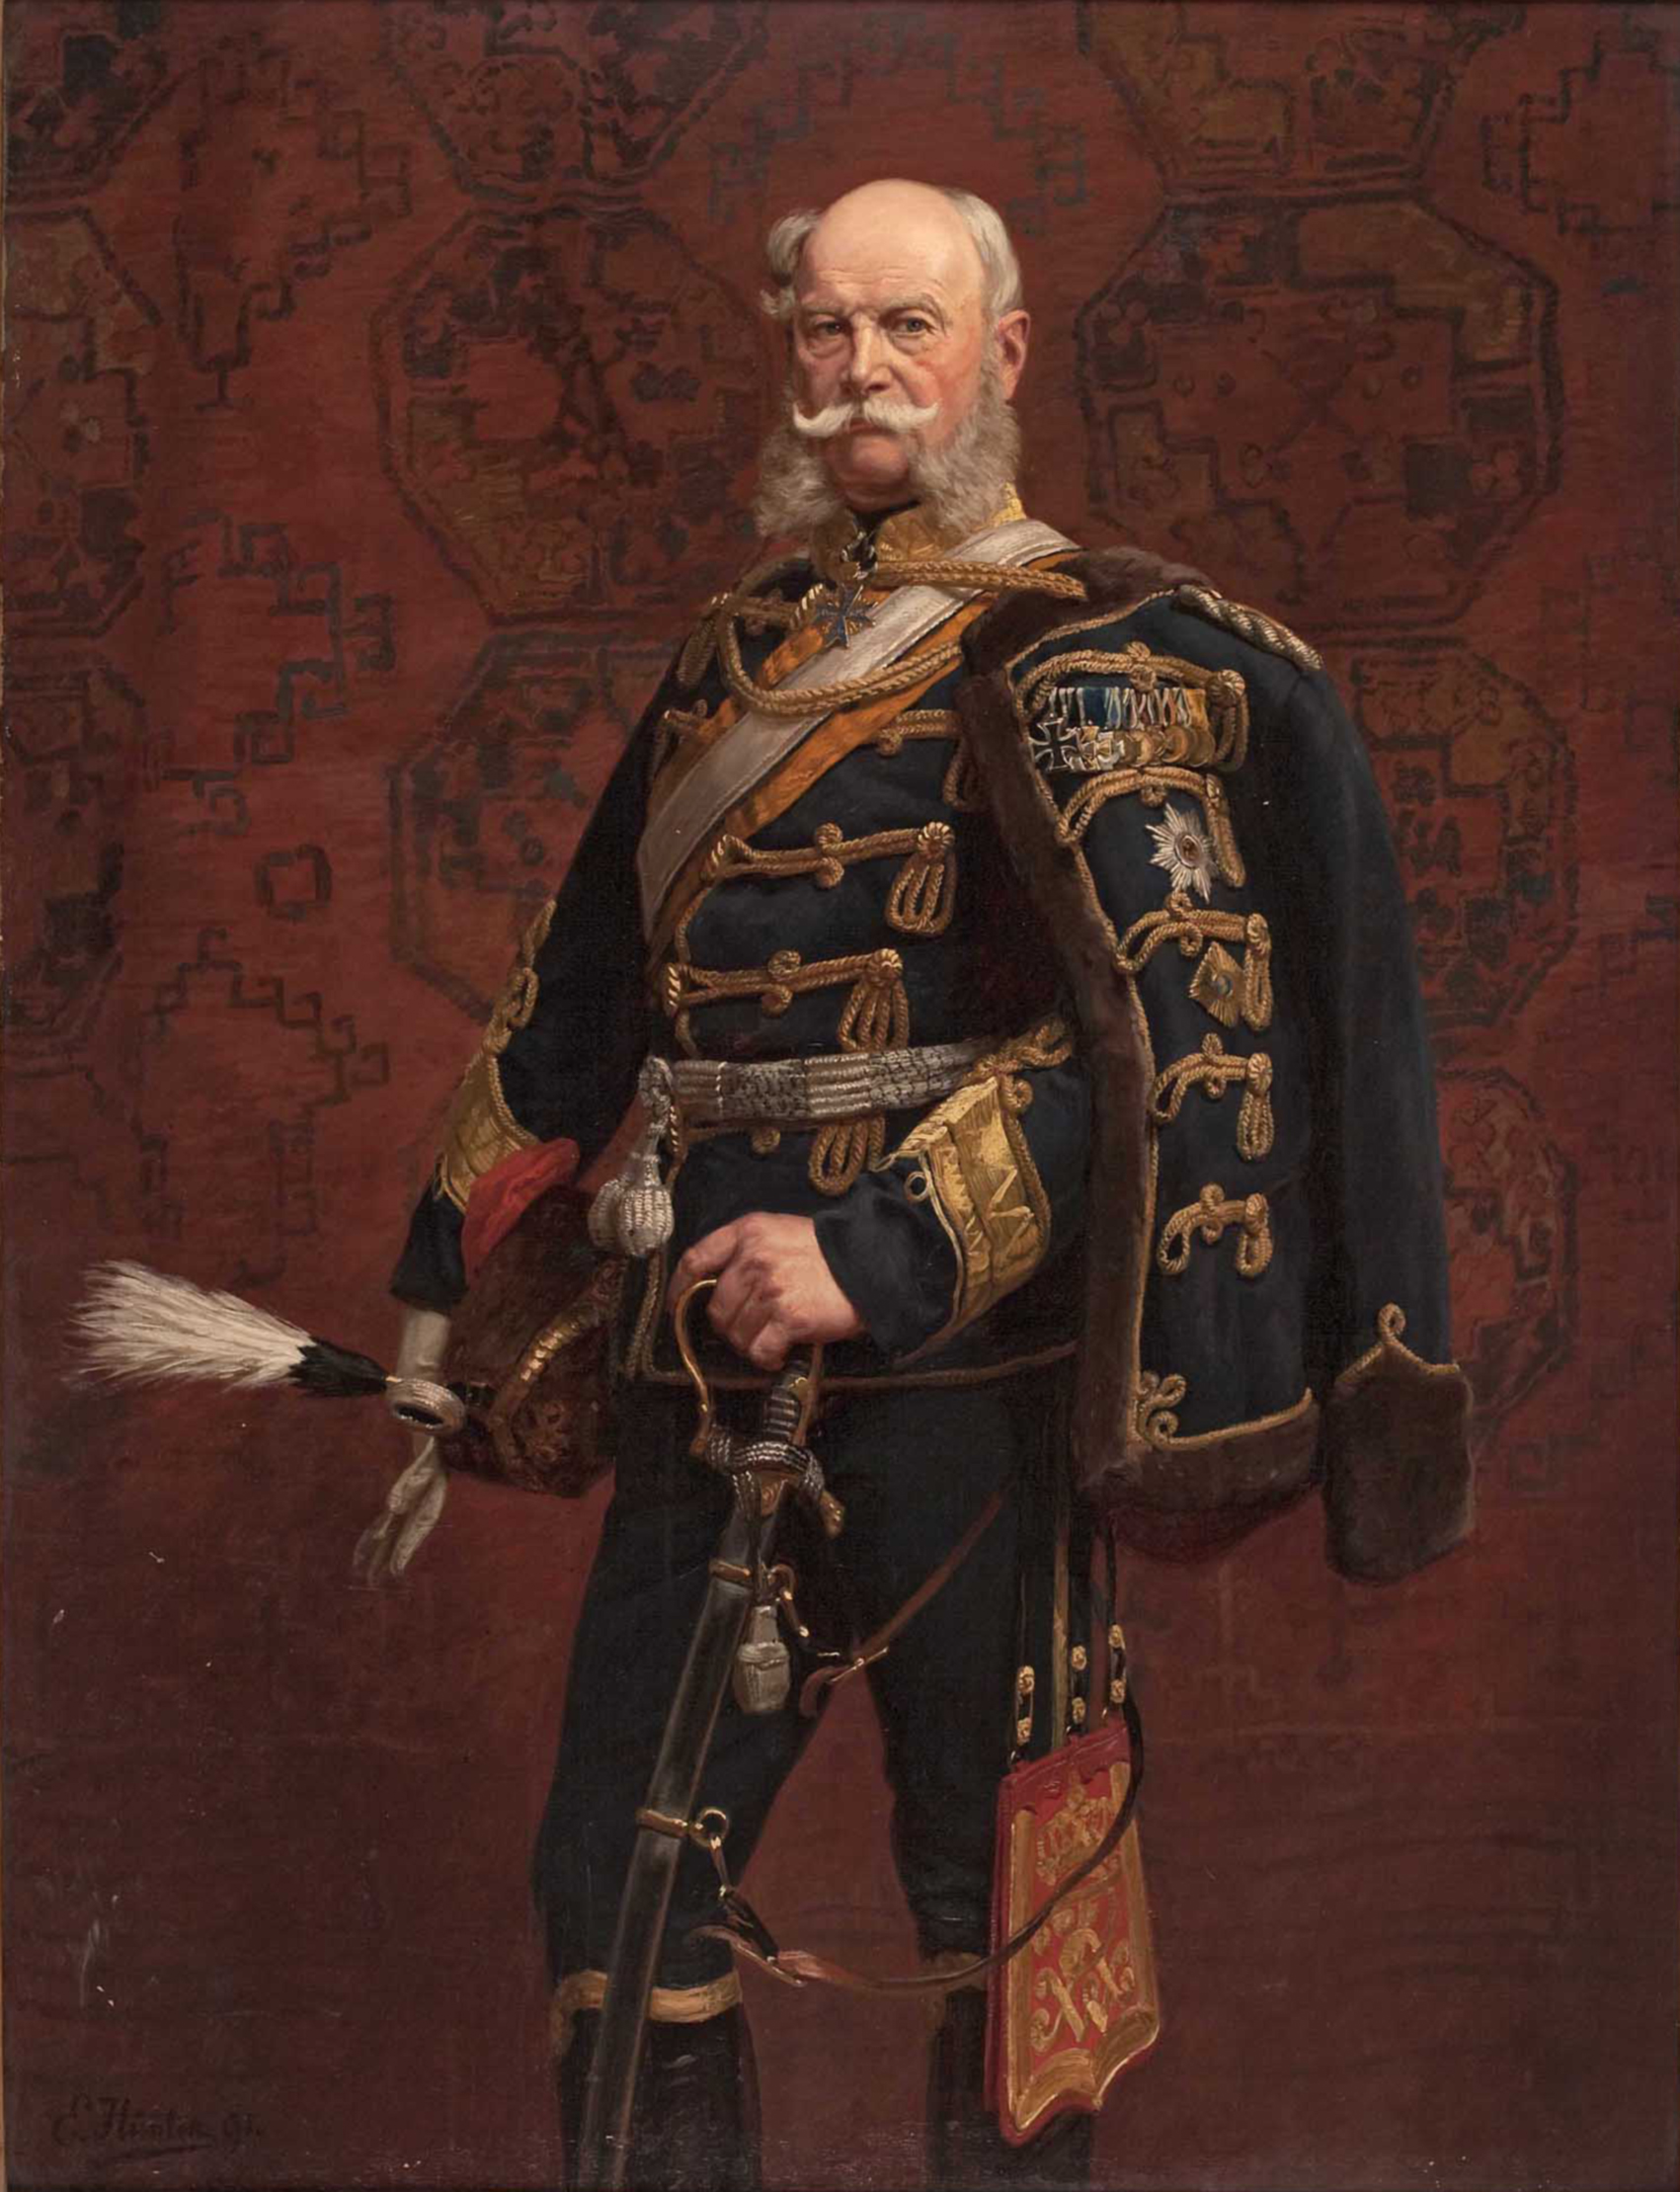 kaiser wilhelm ii Wilhelm ii (friedrich wilhelm viktor albert 27 january 1859 – 4 june 1941) was the last german emperor (kaiser) and king of prussia, reigning from 15 june 1888 until his abdication on 9 november 1918.